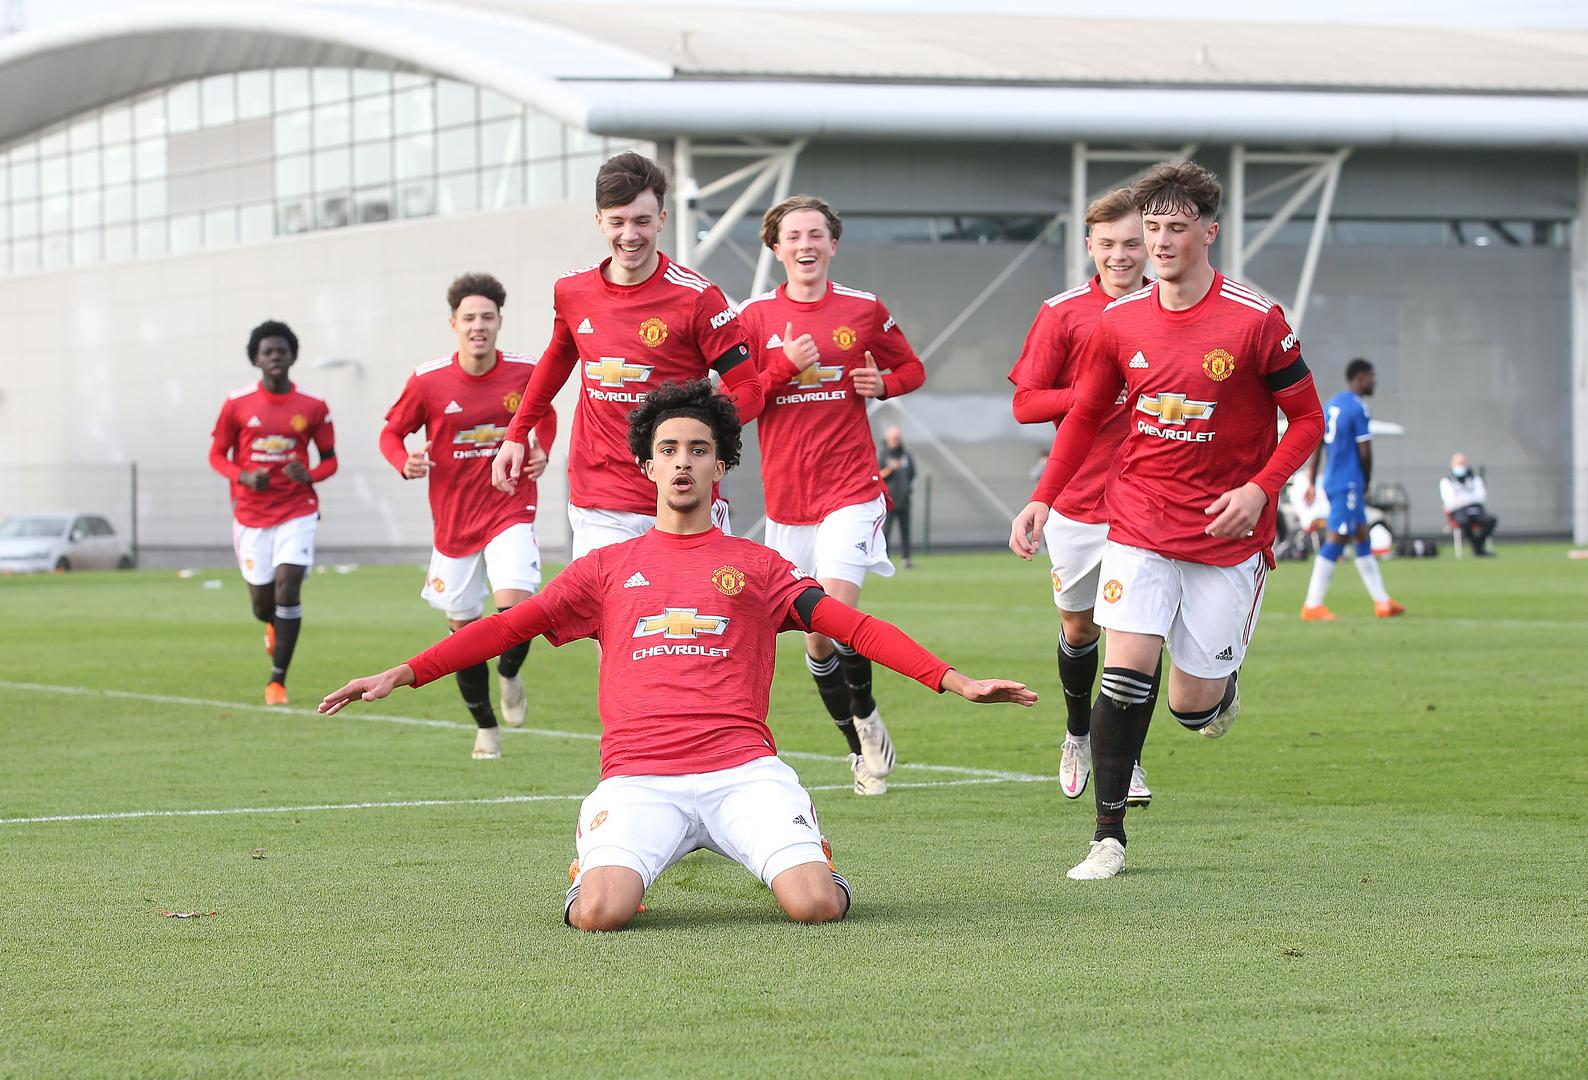 Zidane Iqbal celebrates with his team-mates after scoring for Manchester United Under-18s against Everton